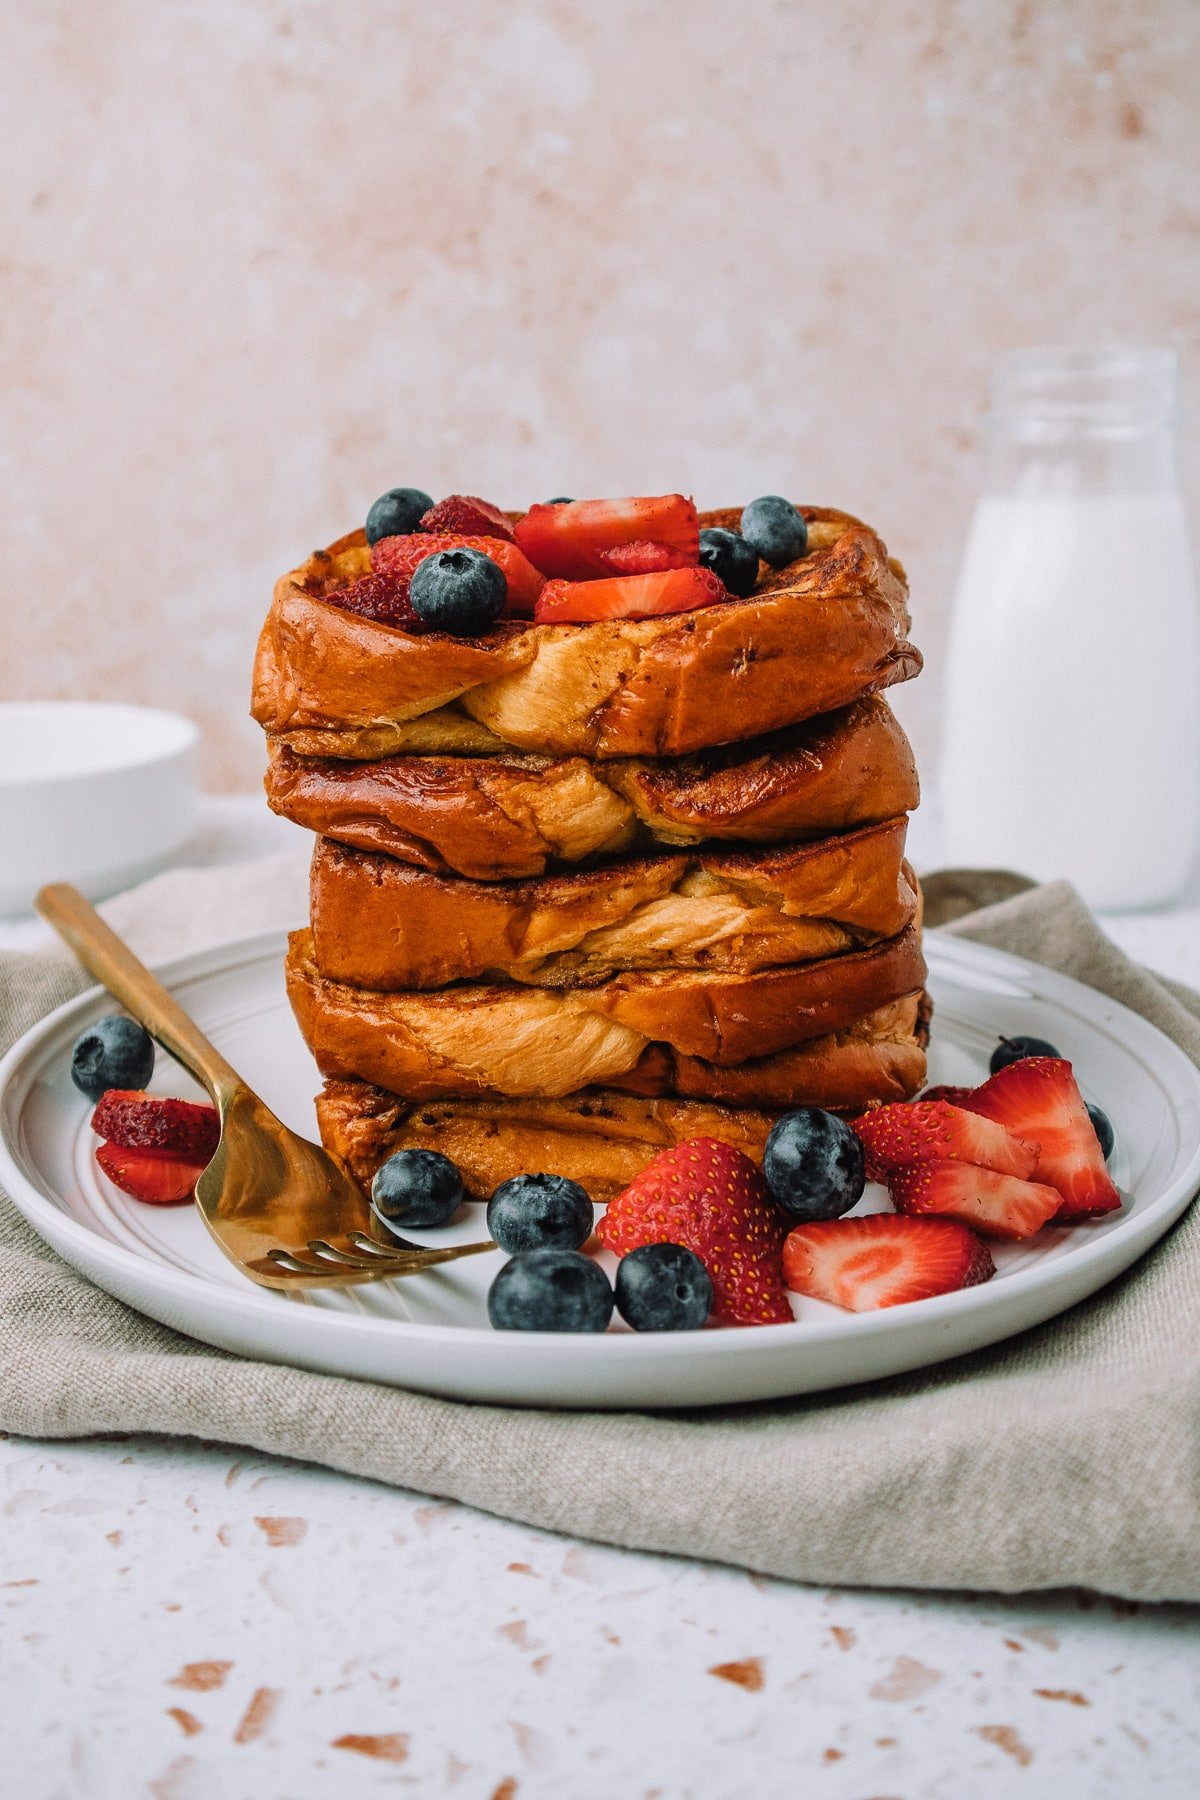 Delicious slices of brioche french toast stacked on a plate with fresh strawberries and blueberries for a yummy breakfast or brunch